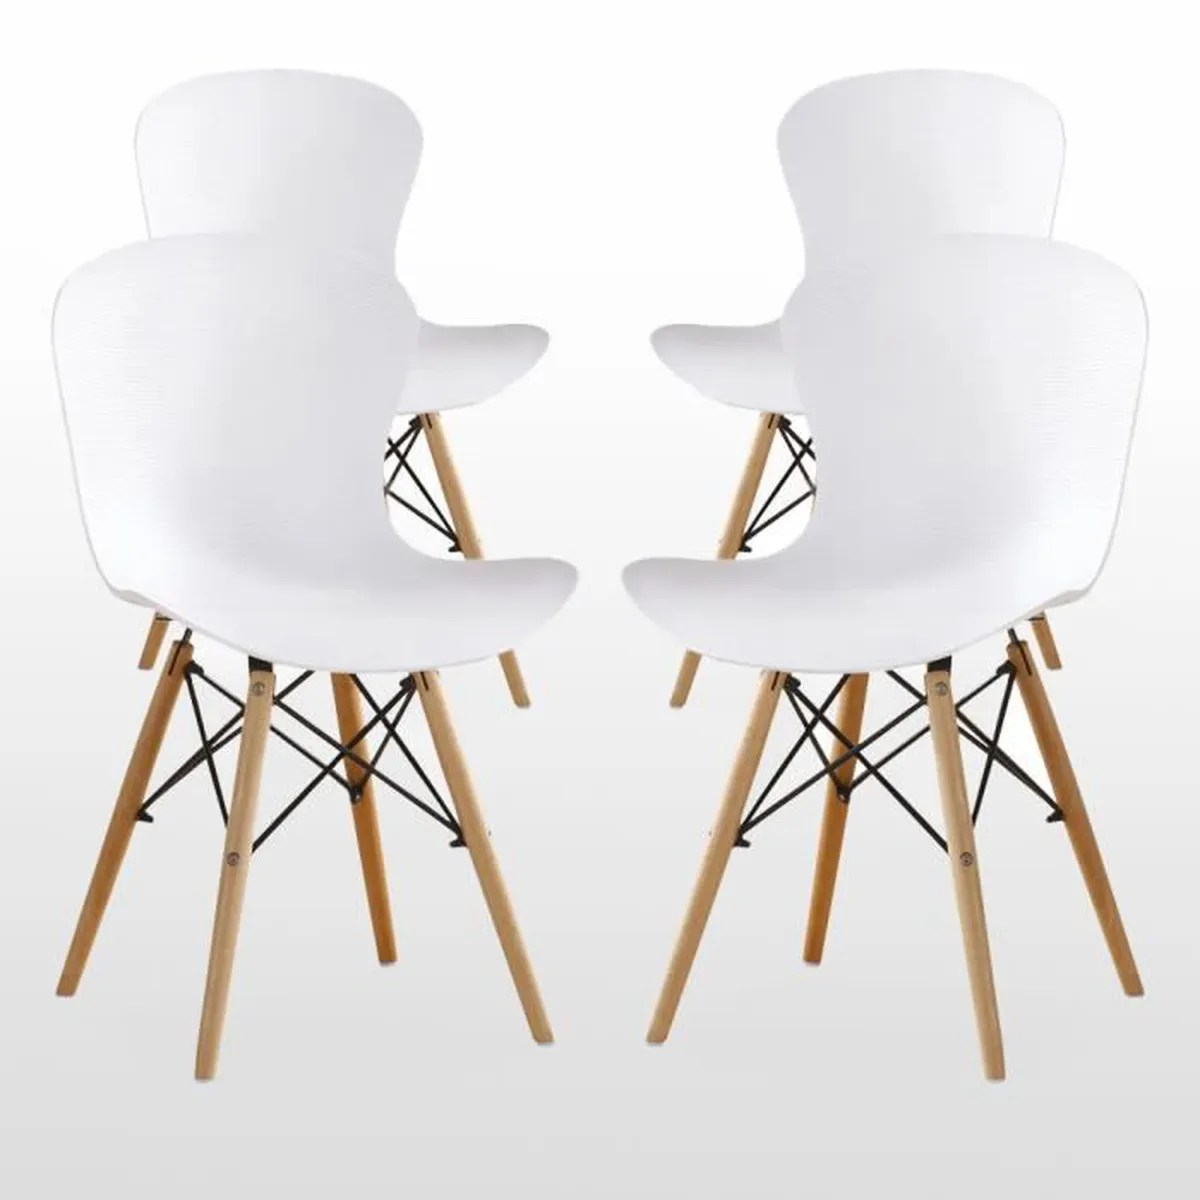 De Salon Blanc Lot De 4 Moderne Chaise De Salon Blanc Design Scandinave Élégant